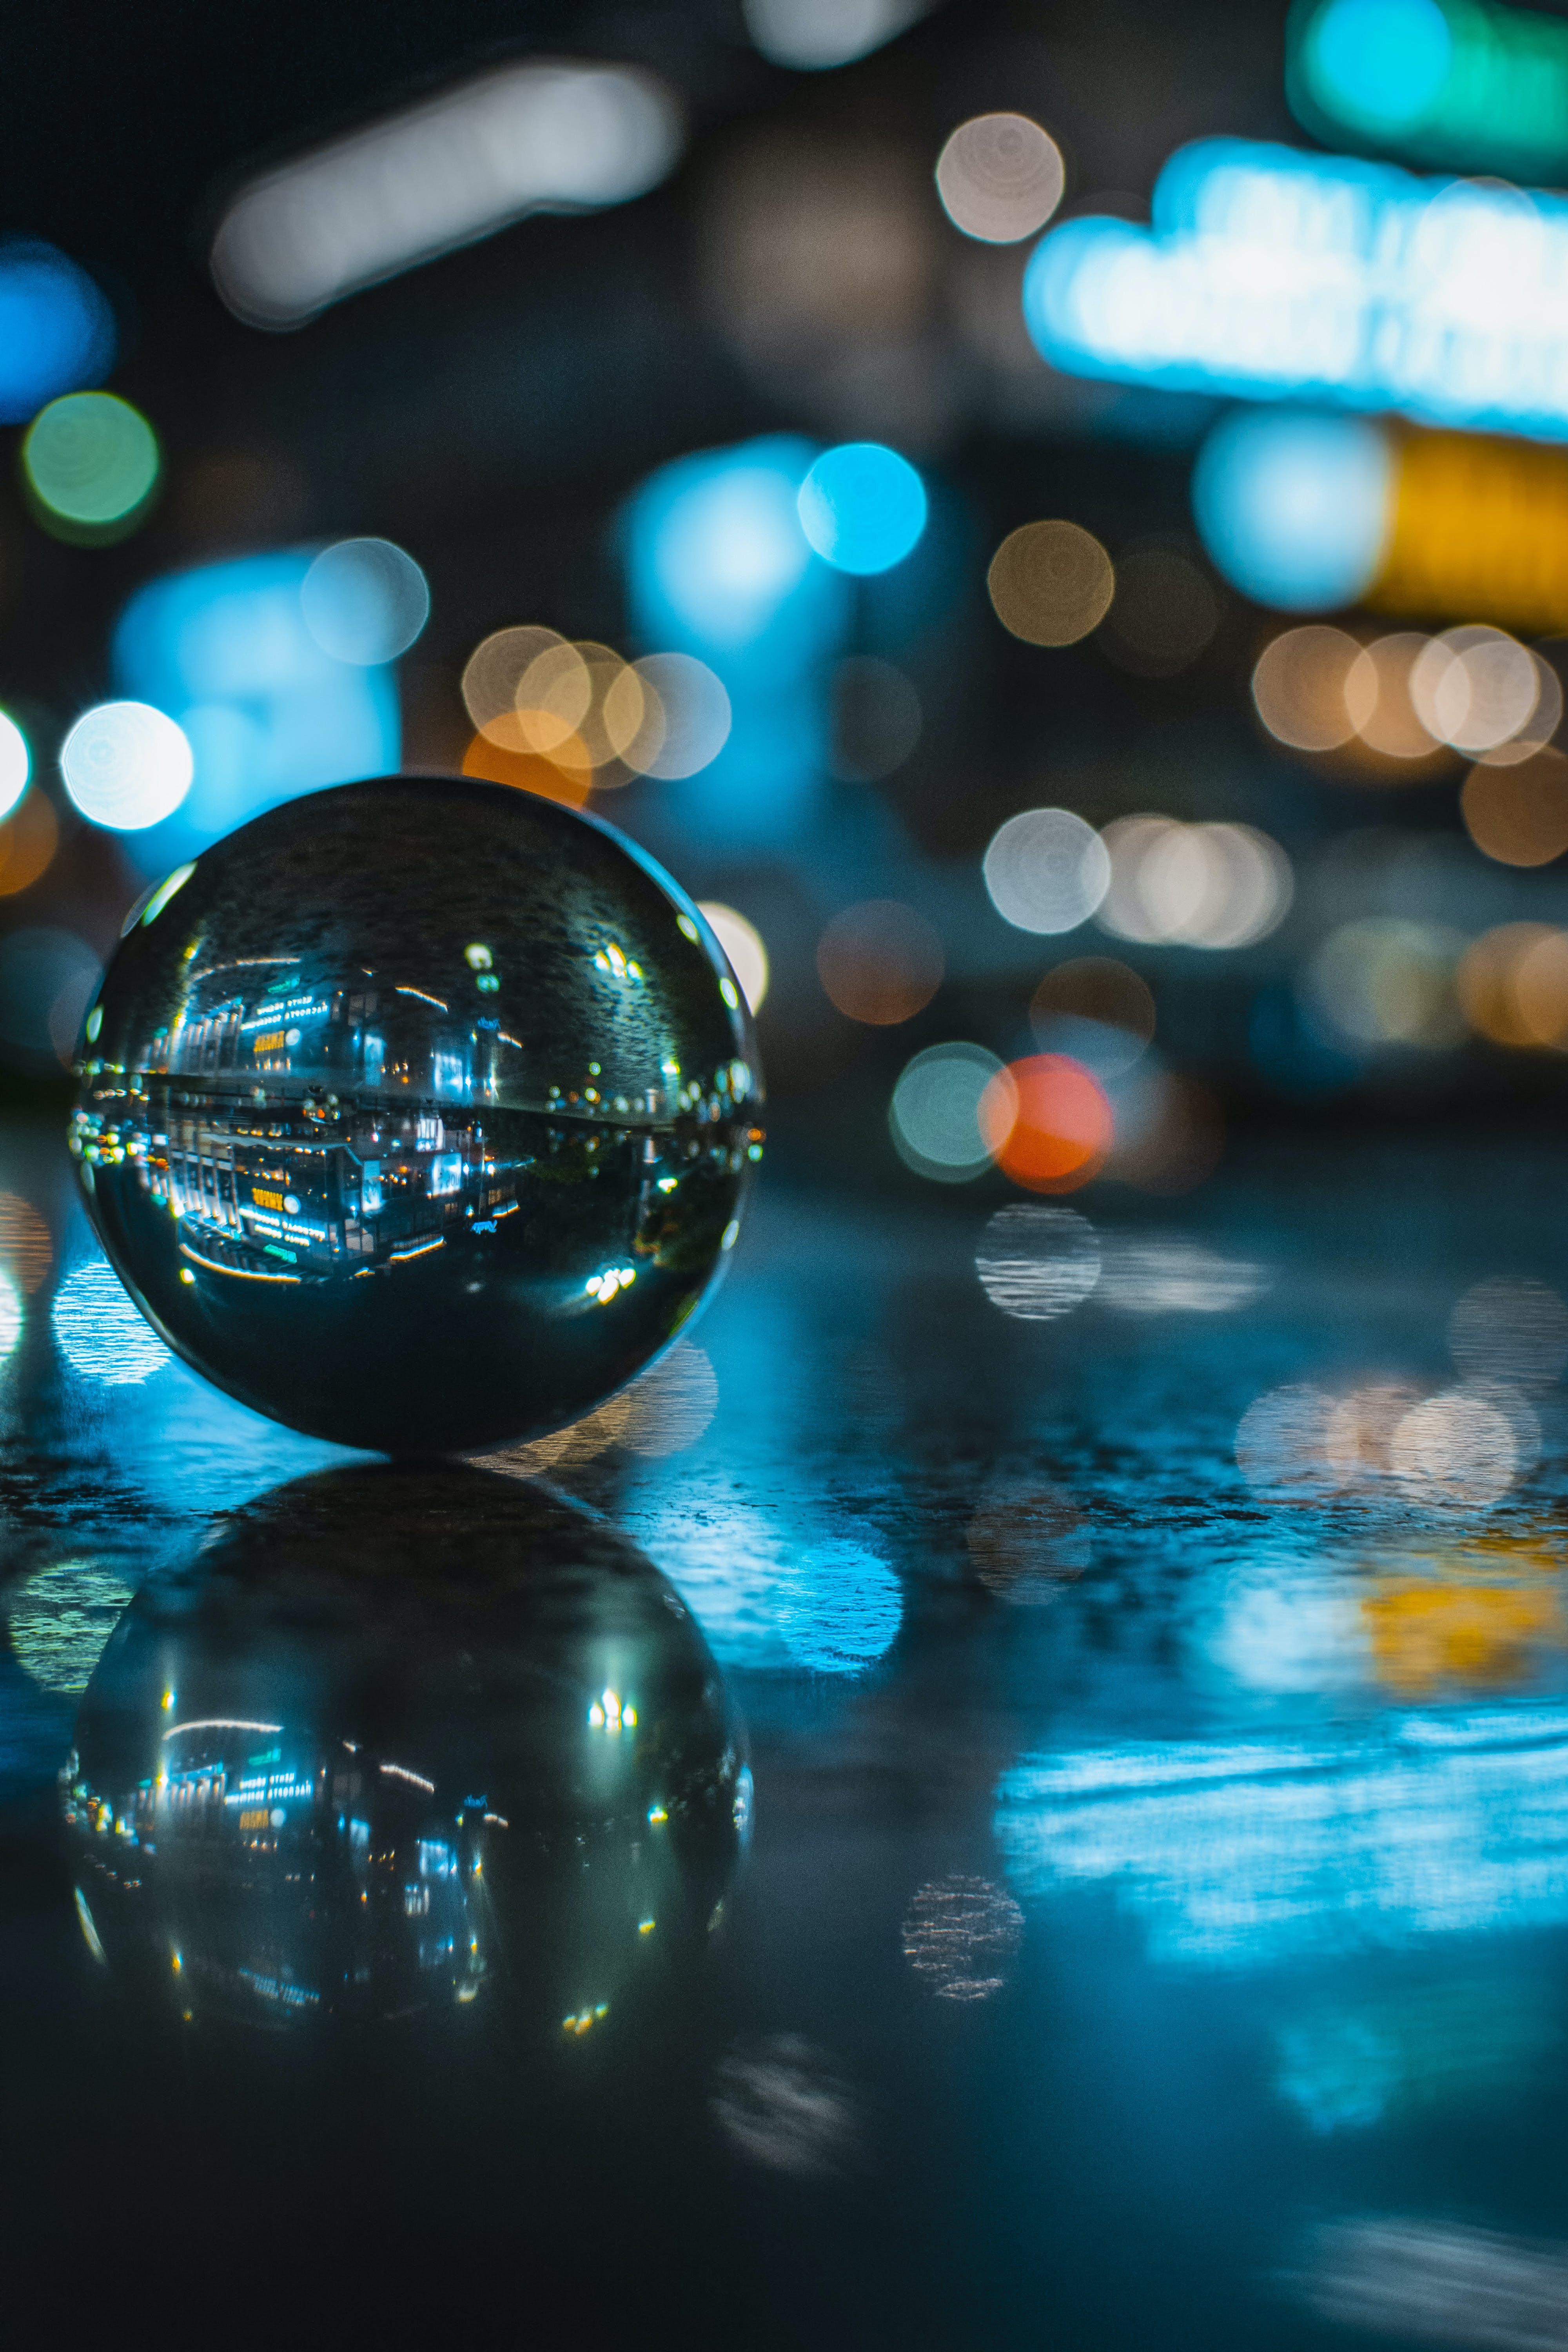 Glass Ball With Reflection of Lighted Building